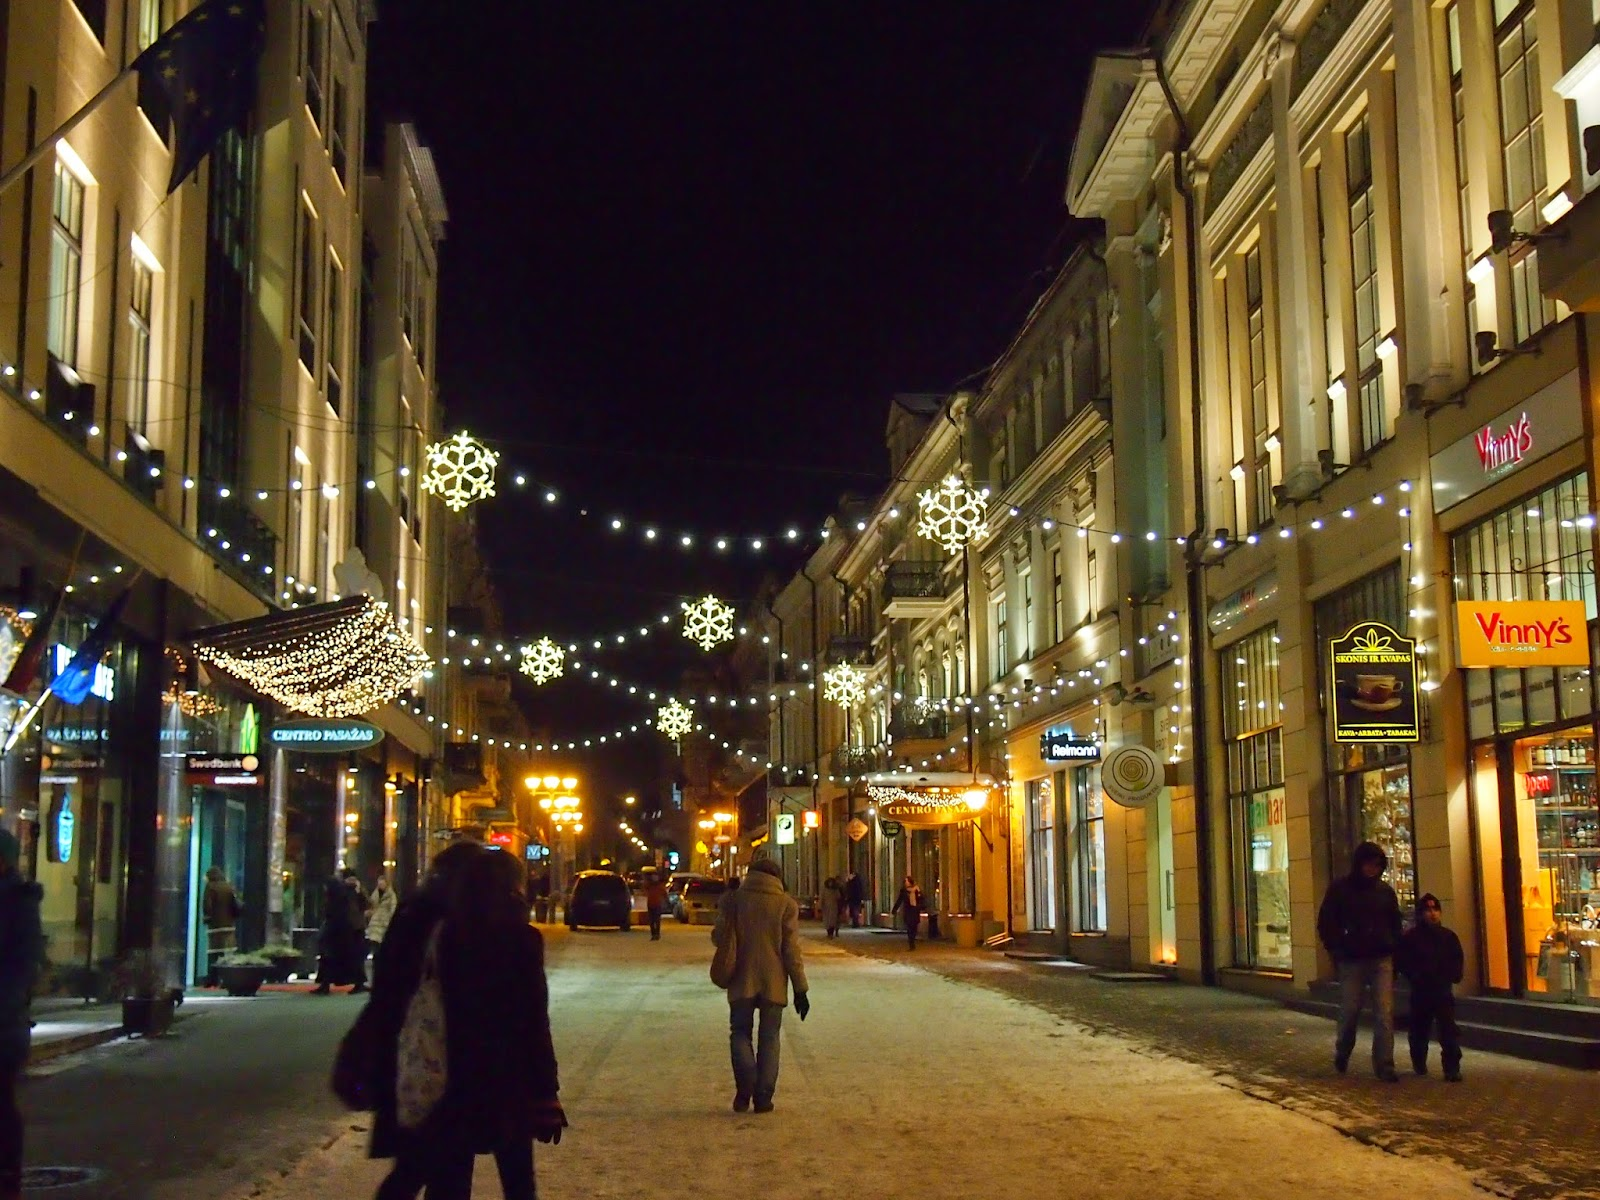 Christmas lights and snow in Vilnius on Vilniaus gatve